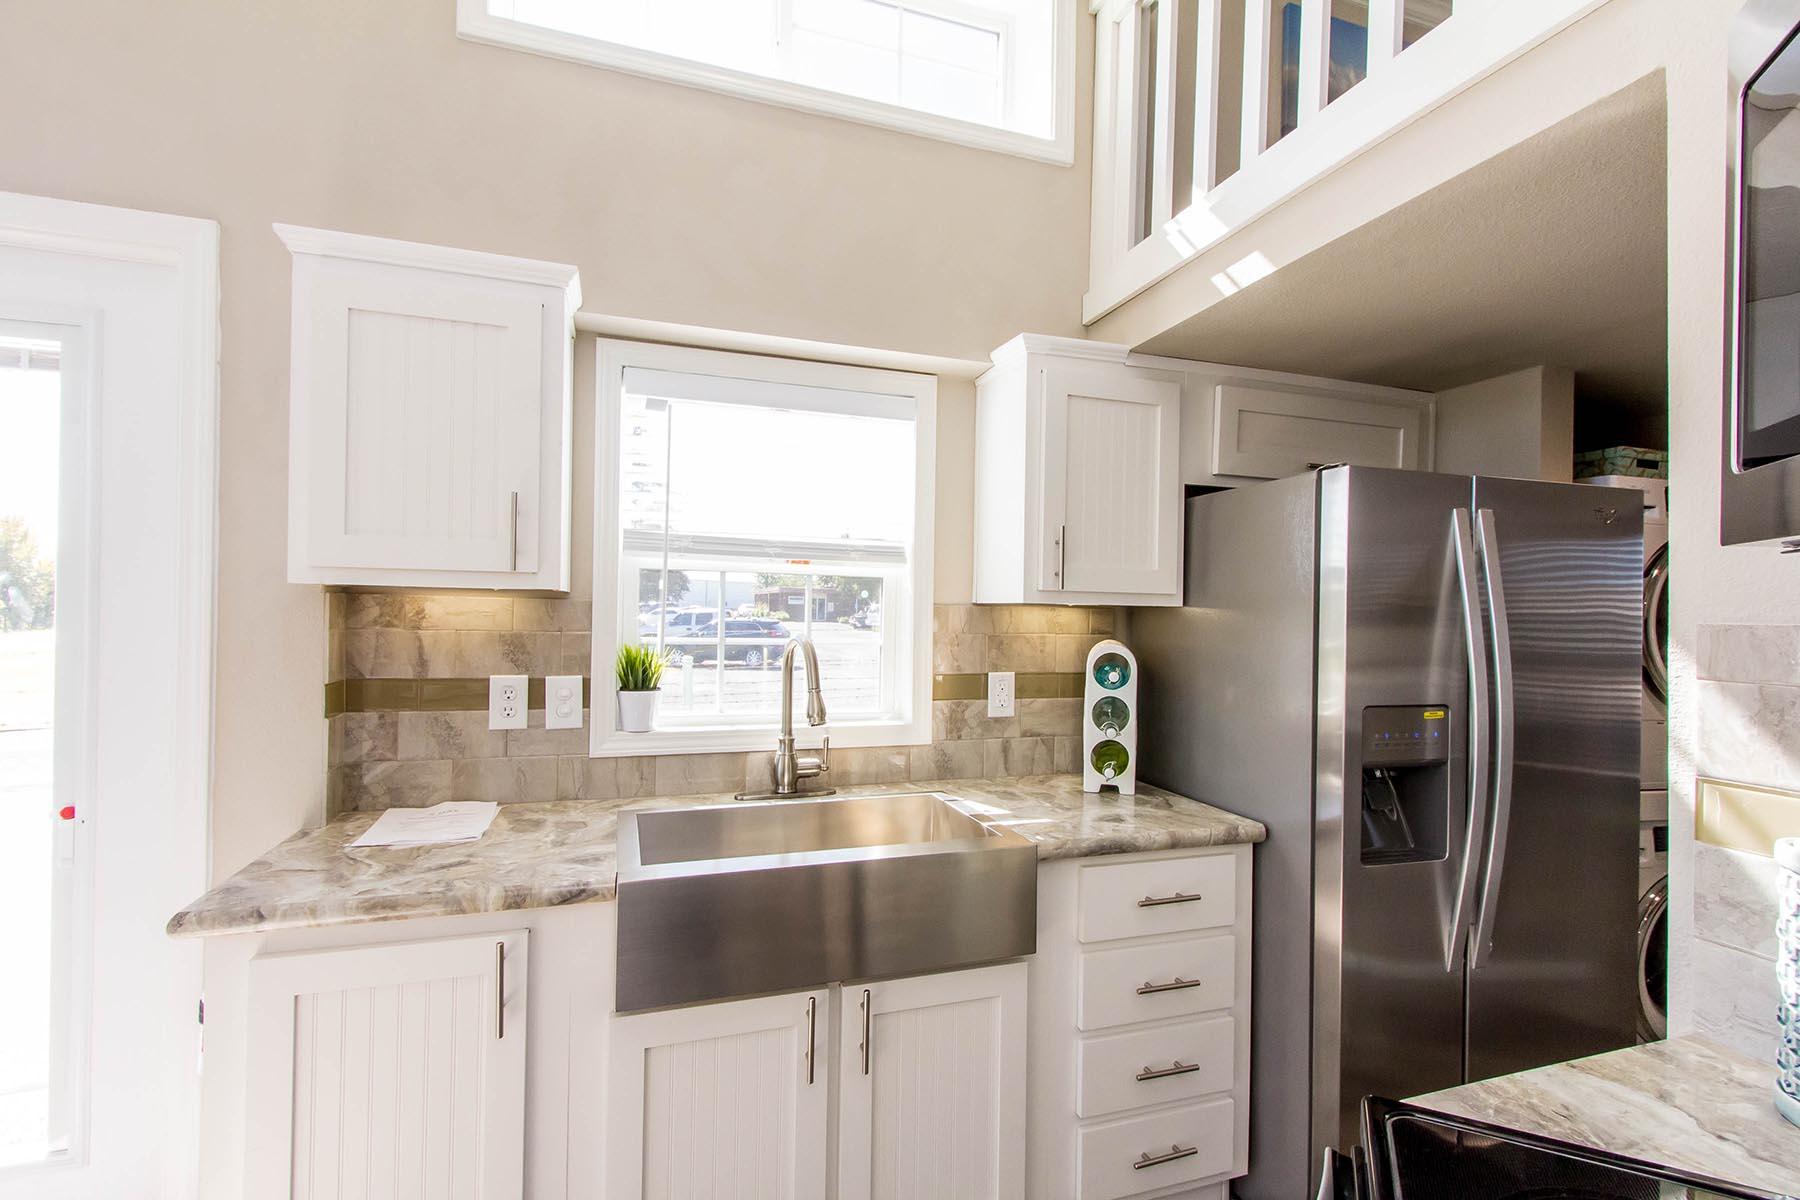 Park Model RV / APH 527 by Athens Park Homes